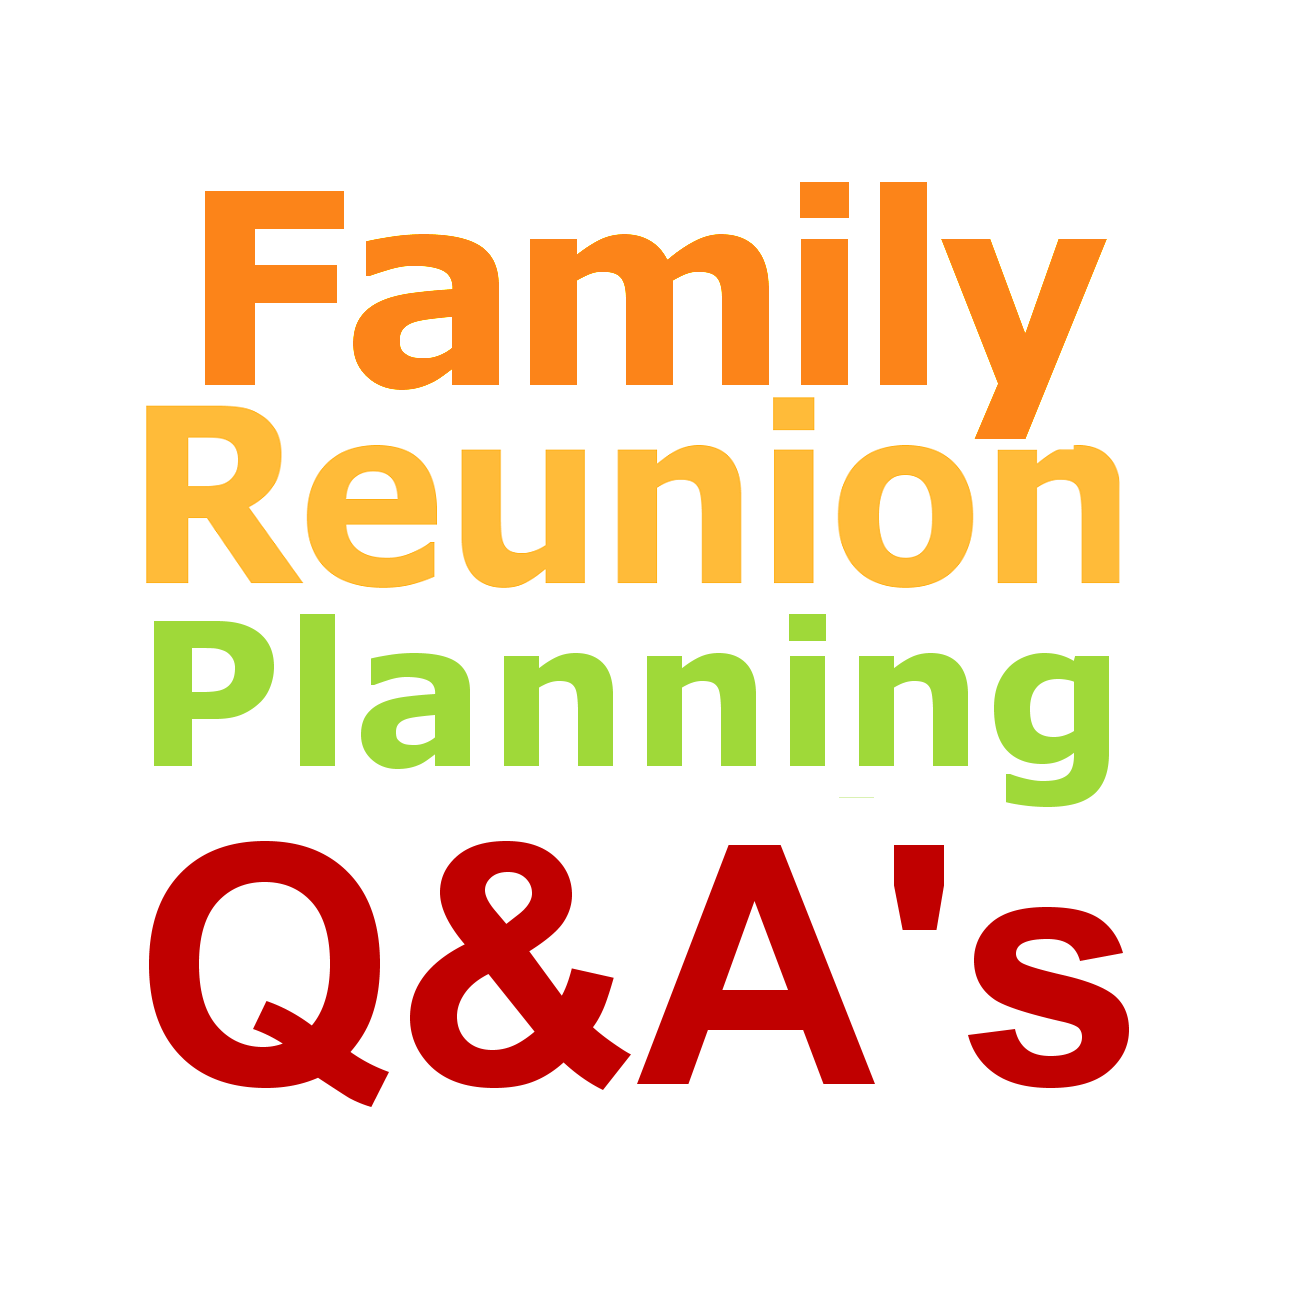 Family Reunion Planner Questions And Answers